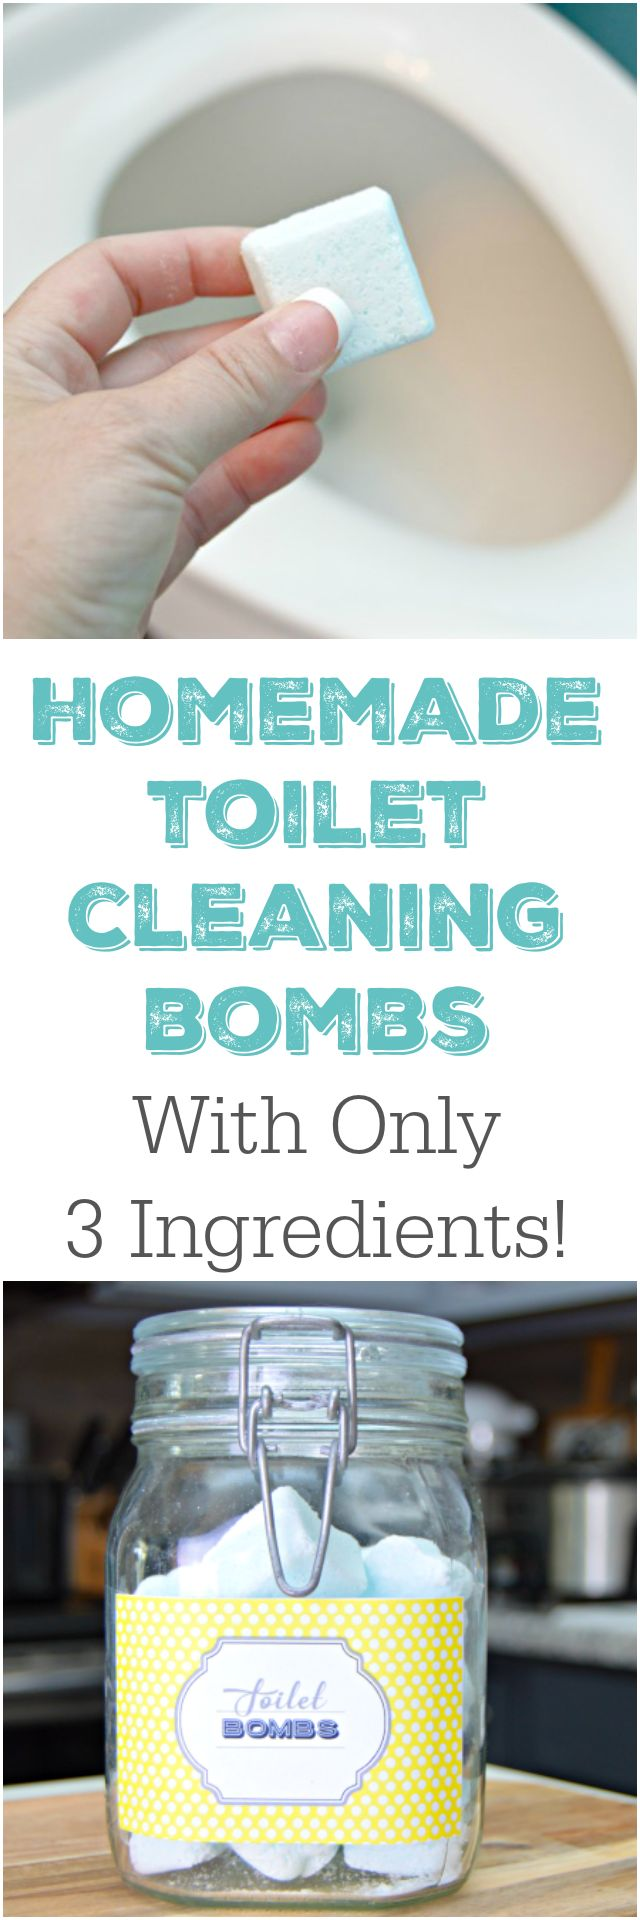 15 Great Cleaning Tips | Great DIY Ideas                                                                                                                                                                                 More